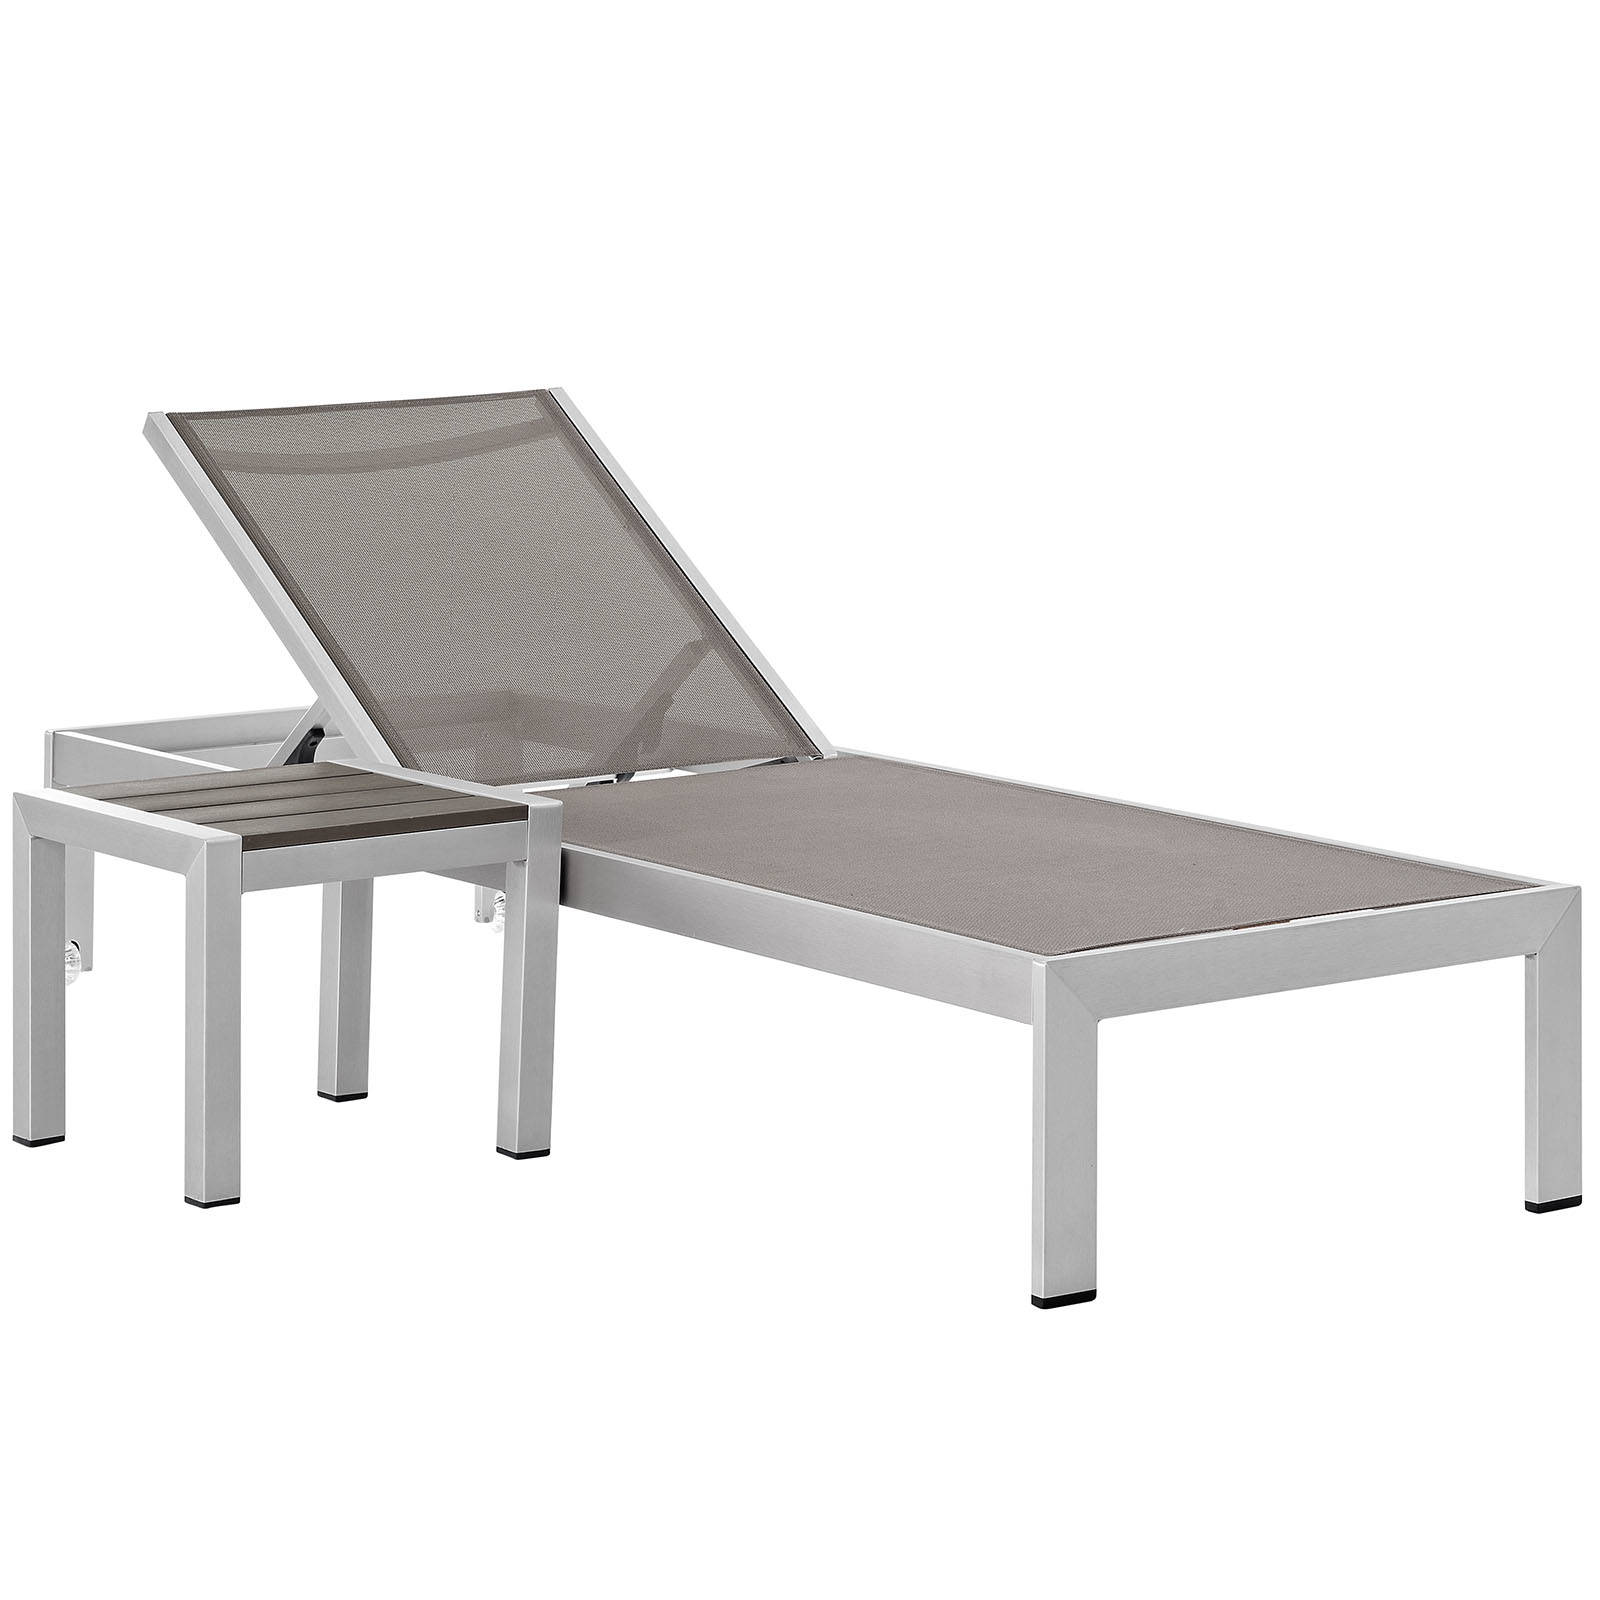 Prime Modway Furniture Shore Silver Gray 2Pc Outdoor Chaise And Side Table Set Theyellowbook Wood Chair Design Ideas Theyellowbookinfo